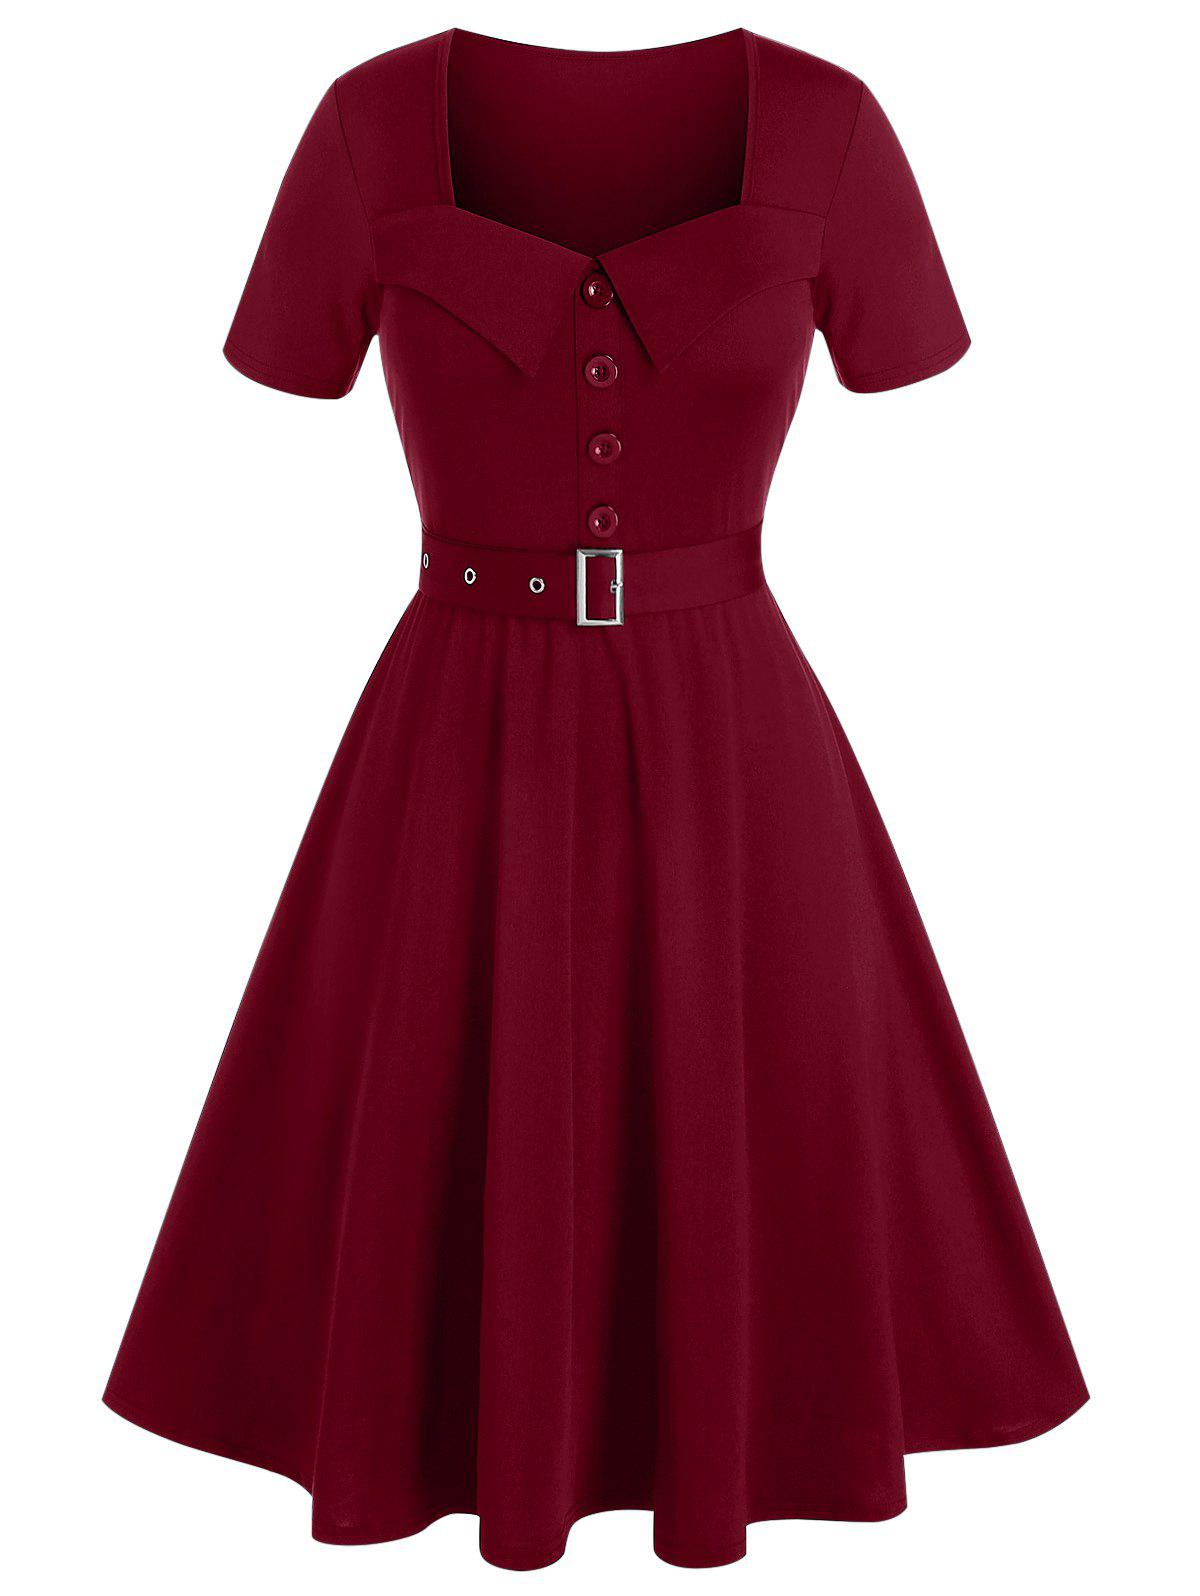 Plus Size Belted Buttoned Square Neck Vintage Dress фото